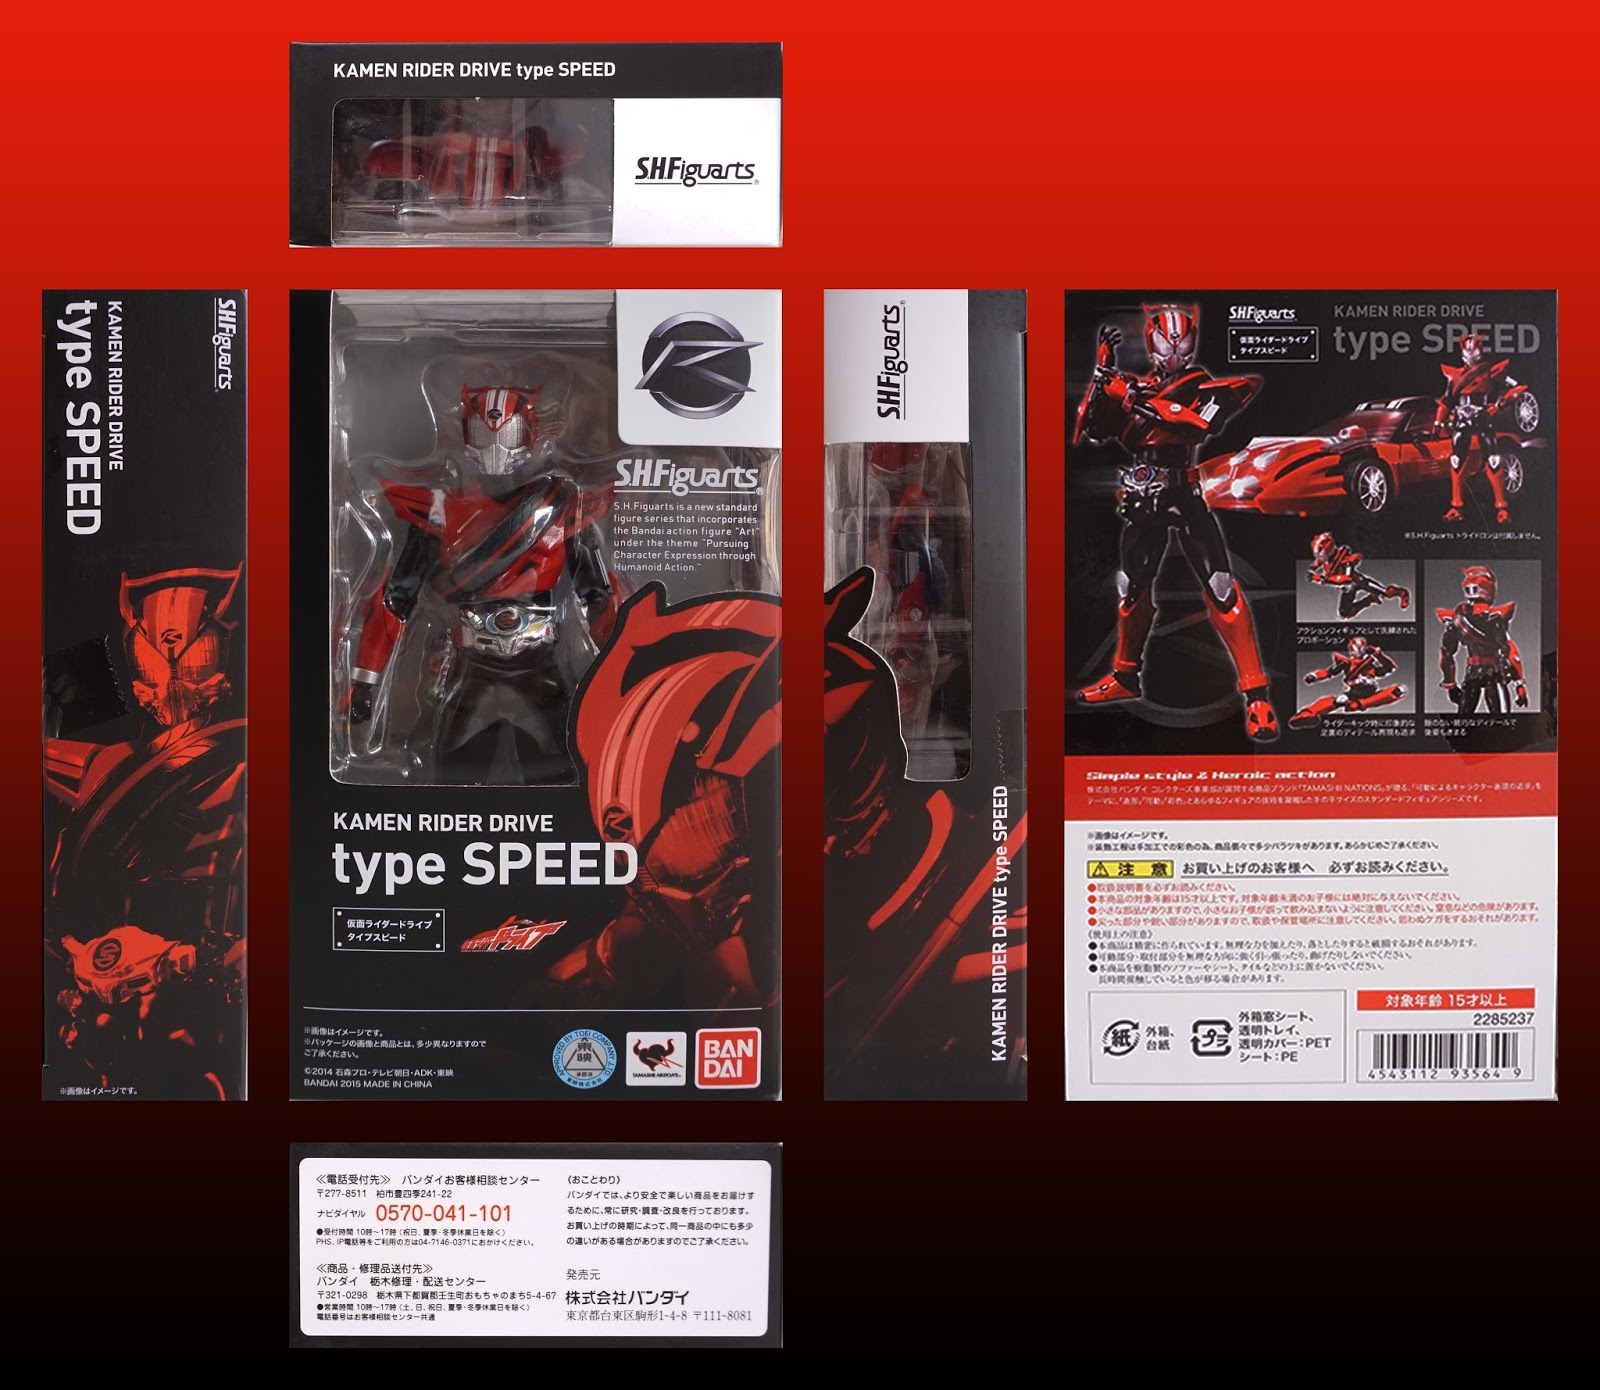 [Review] S.H.Figuarts Kamen Rider Drive Type Speed + 1st